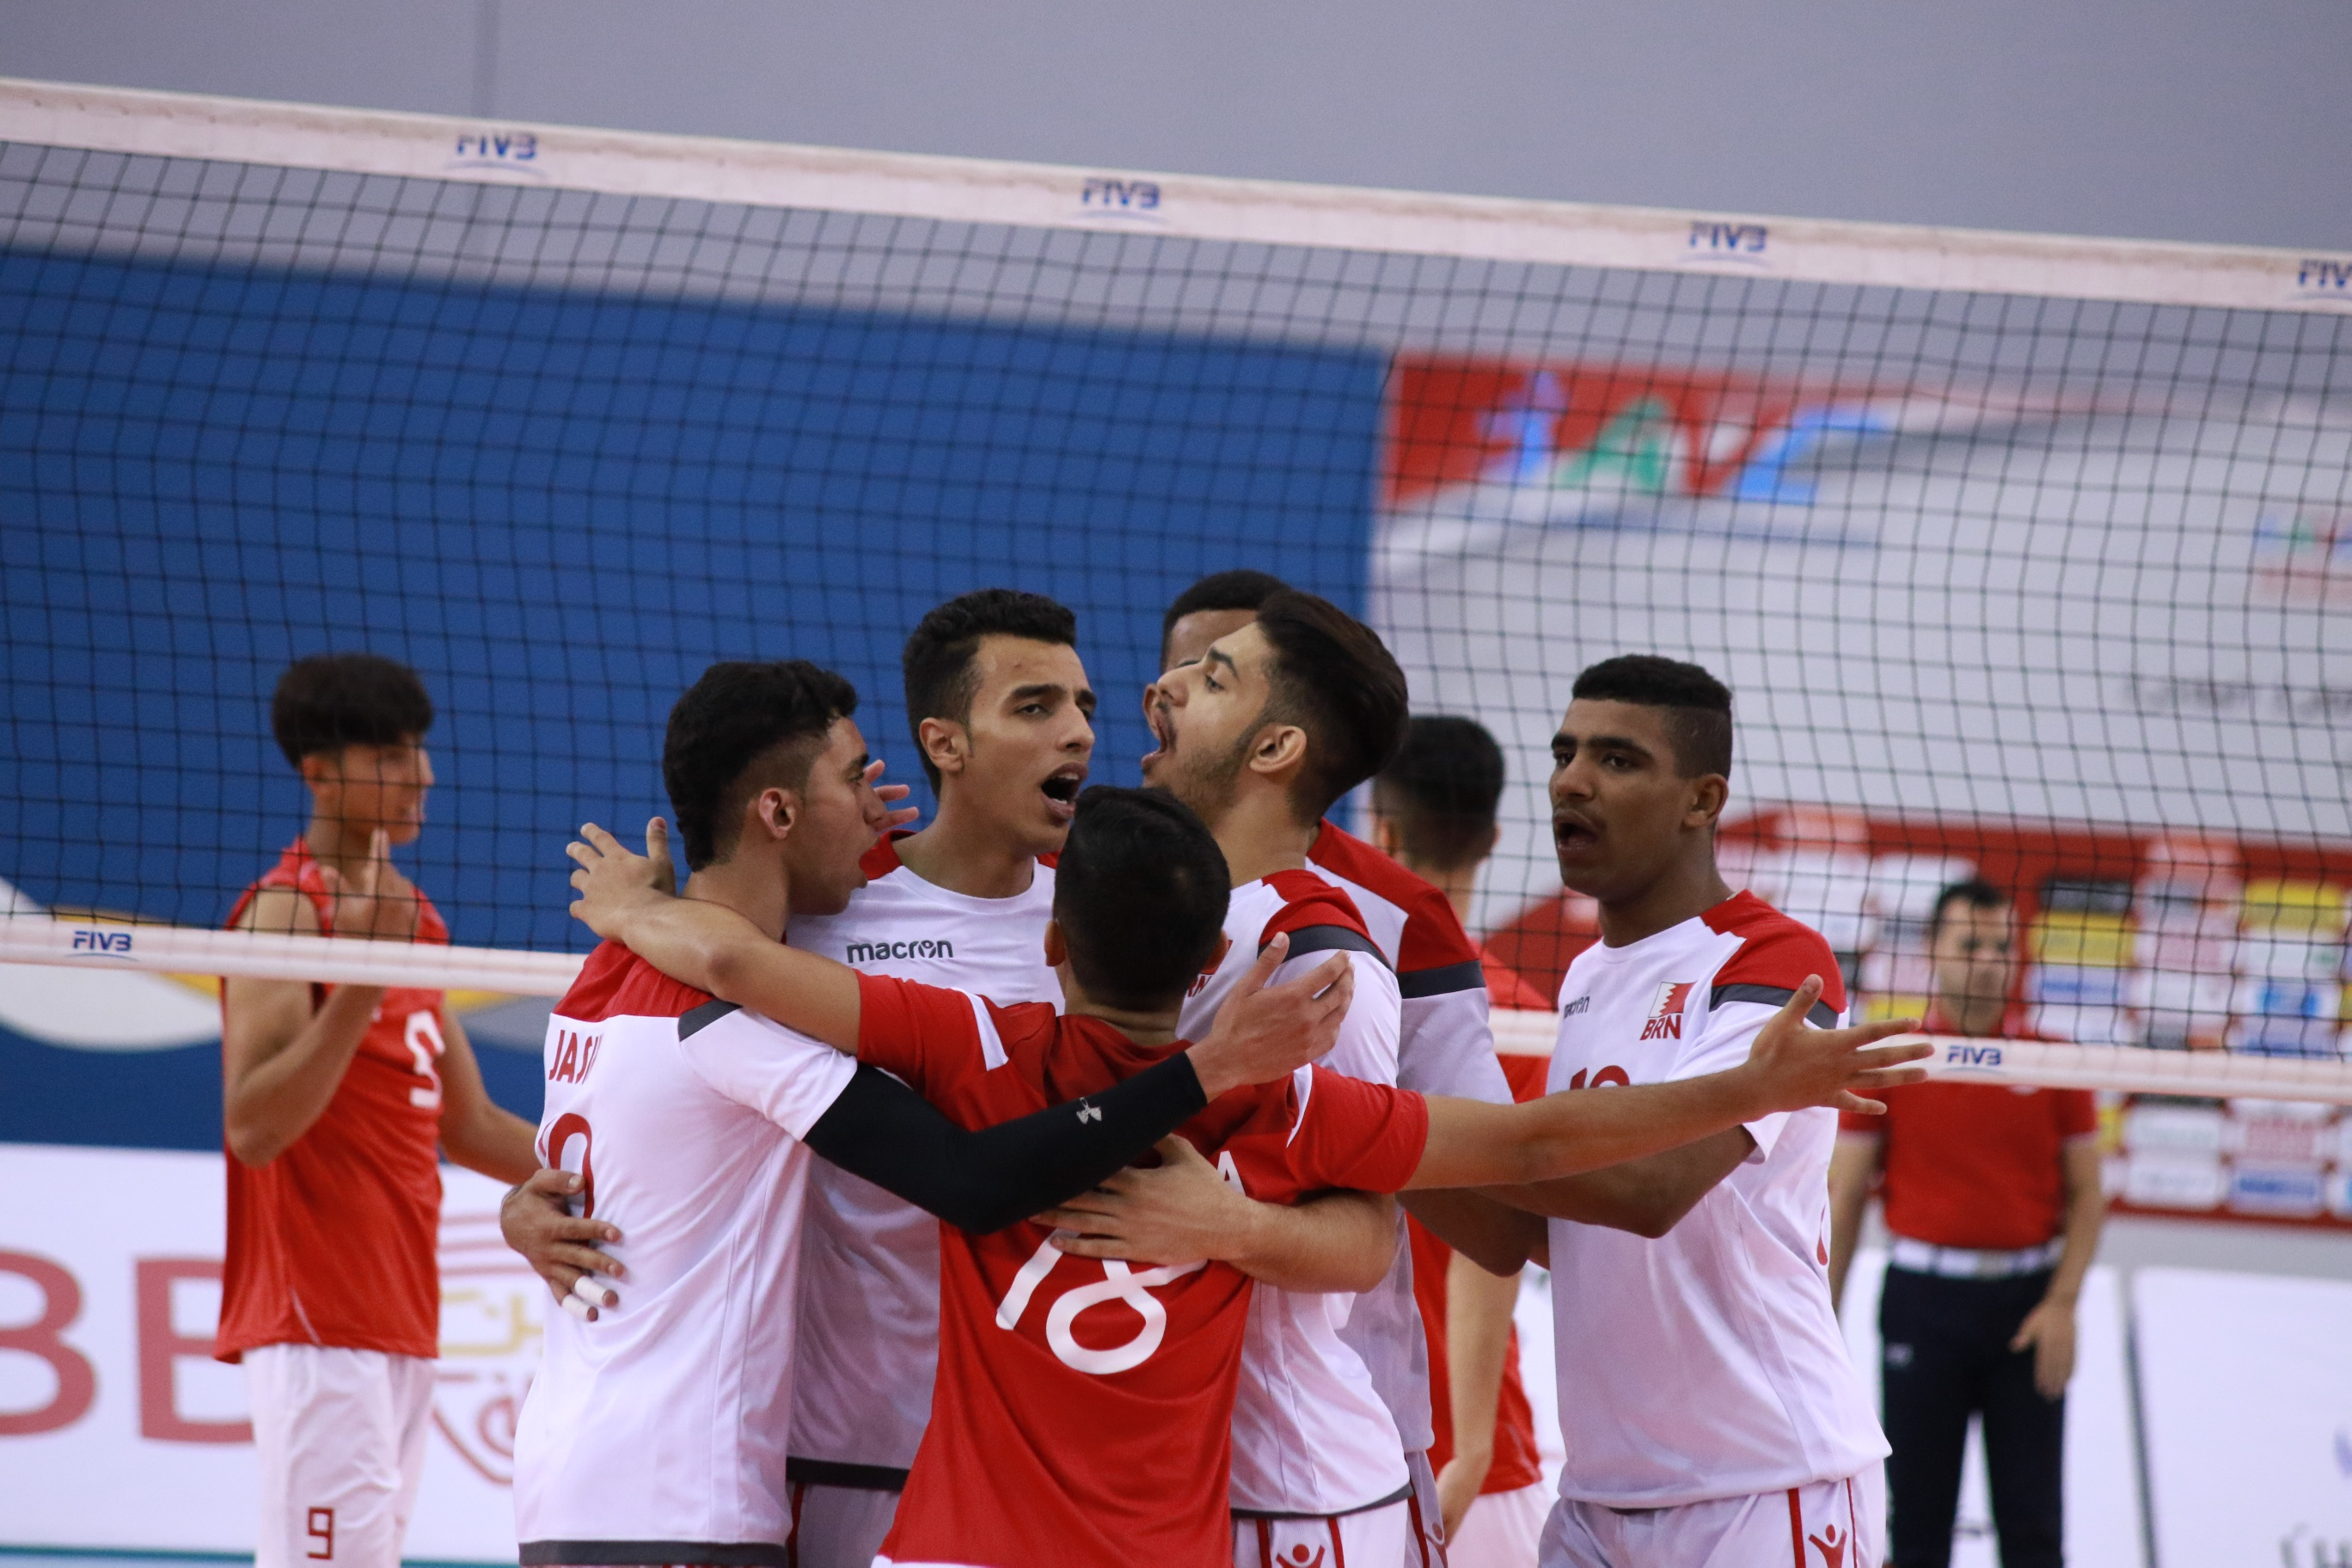 HOSTS BAHRAIN STRIVE TO LEAD THE PACK AT AVC WESTERN ZONE U23 QUALIFICATION TOURNAMENT